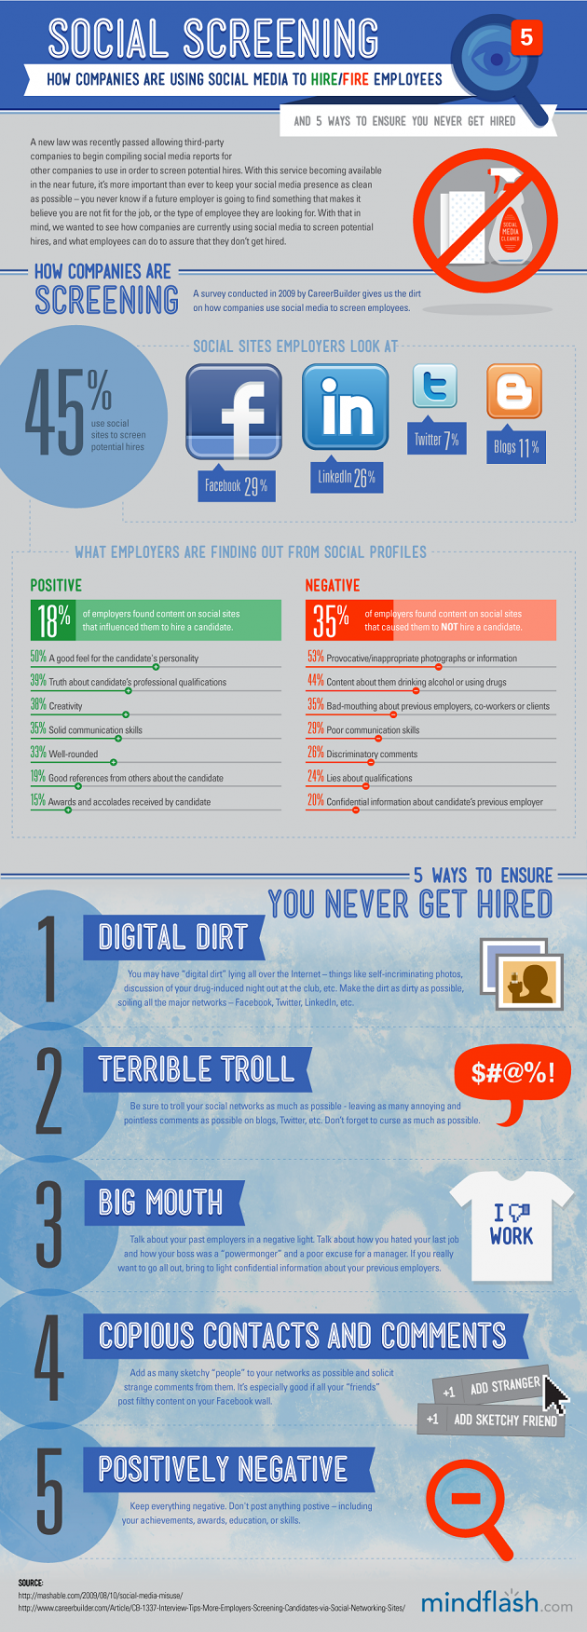 5 Ways to Ensure You Never Get Hired